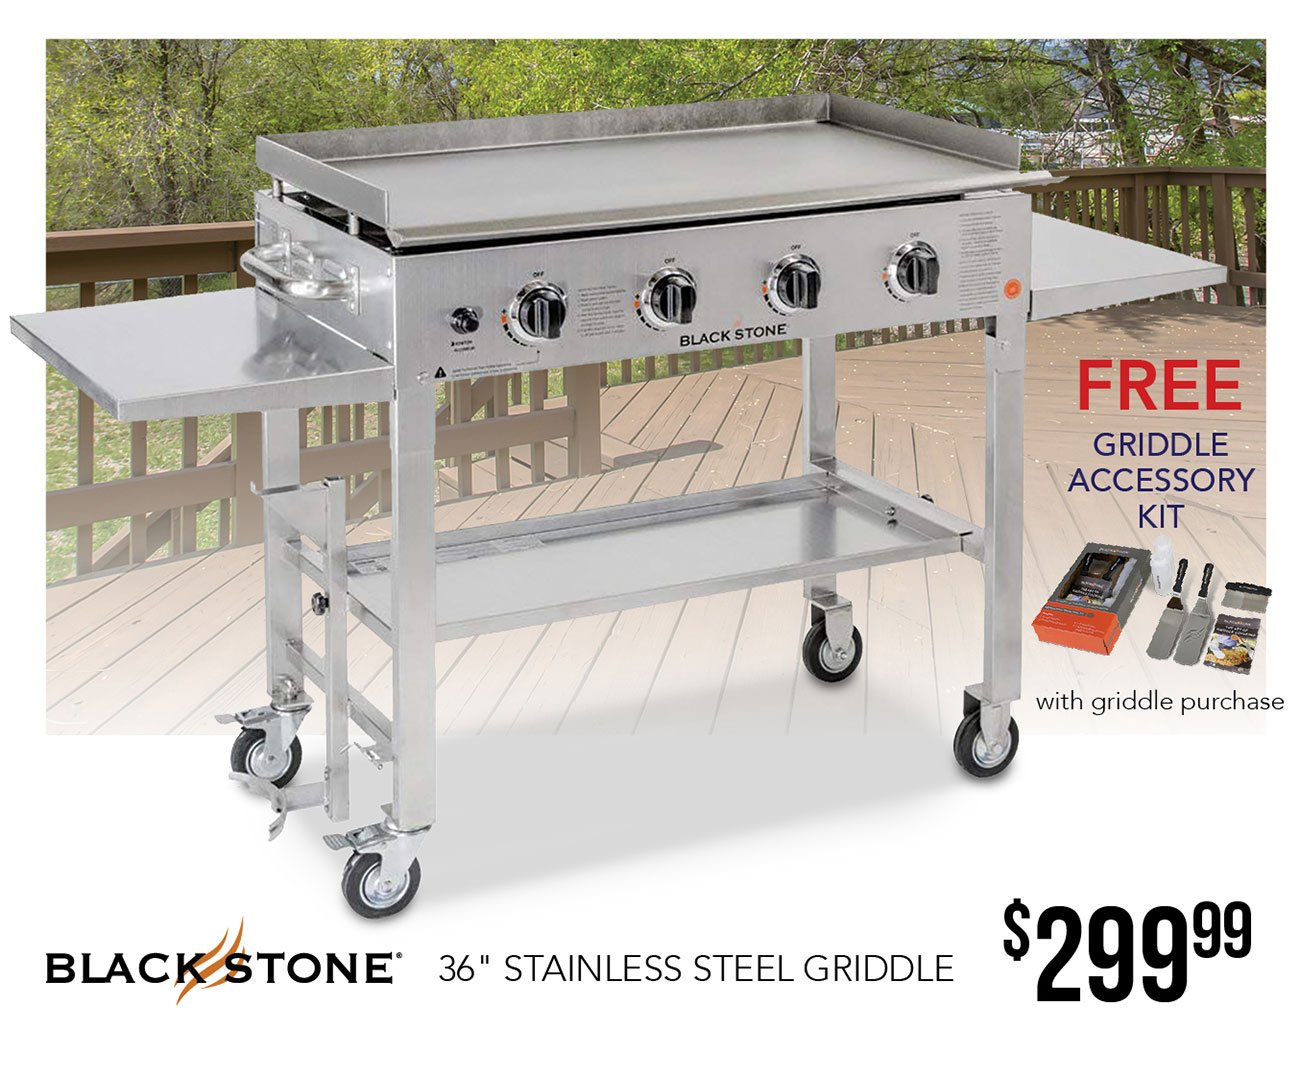 Blackstone-36-inch-griddle